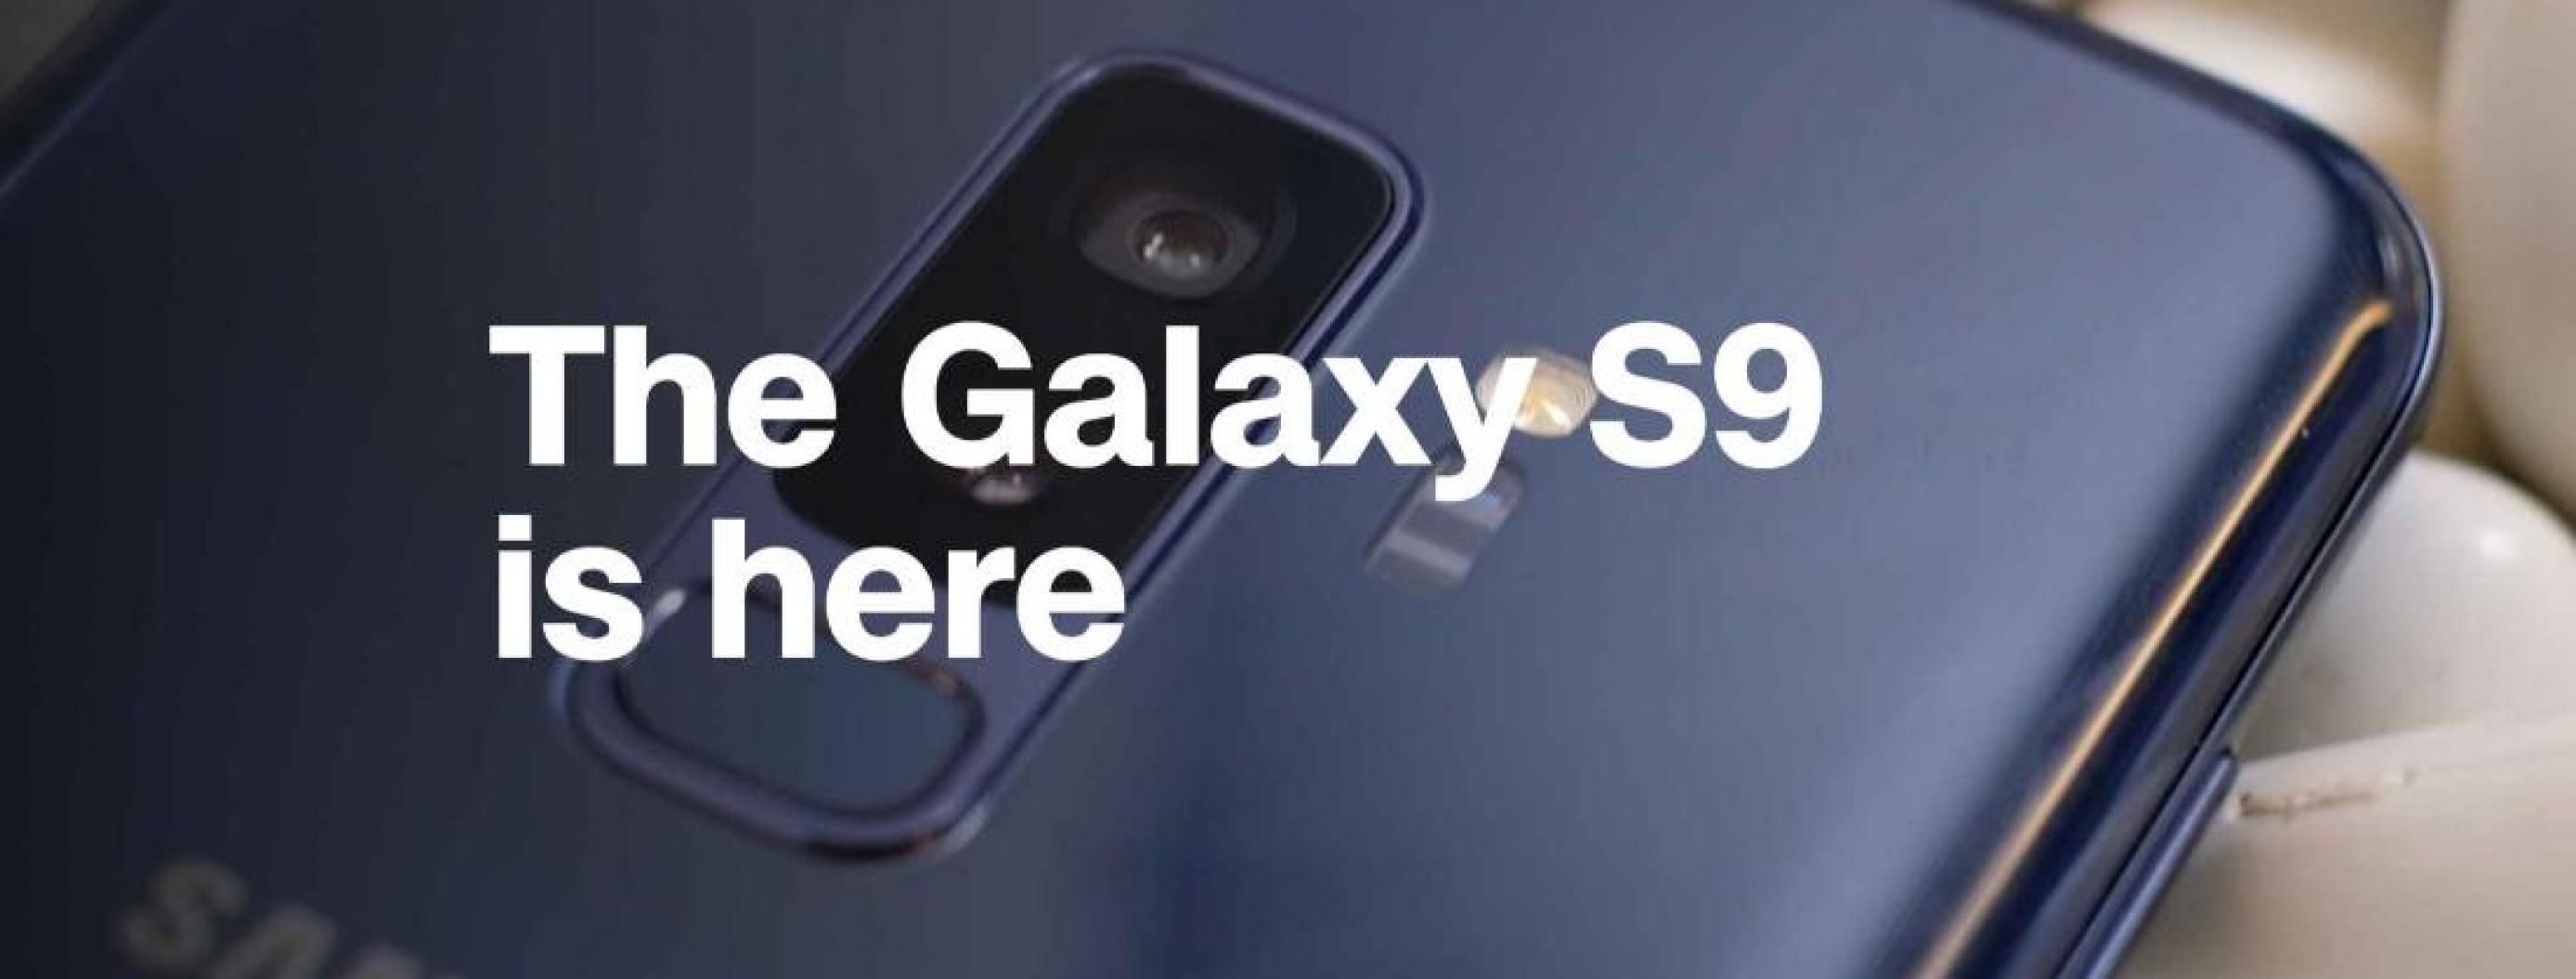 Samsung Presents Galaxy S9's Dual-Aperture Camera... And Not Much Else